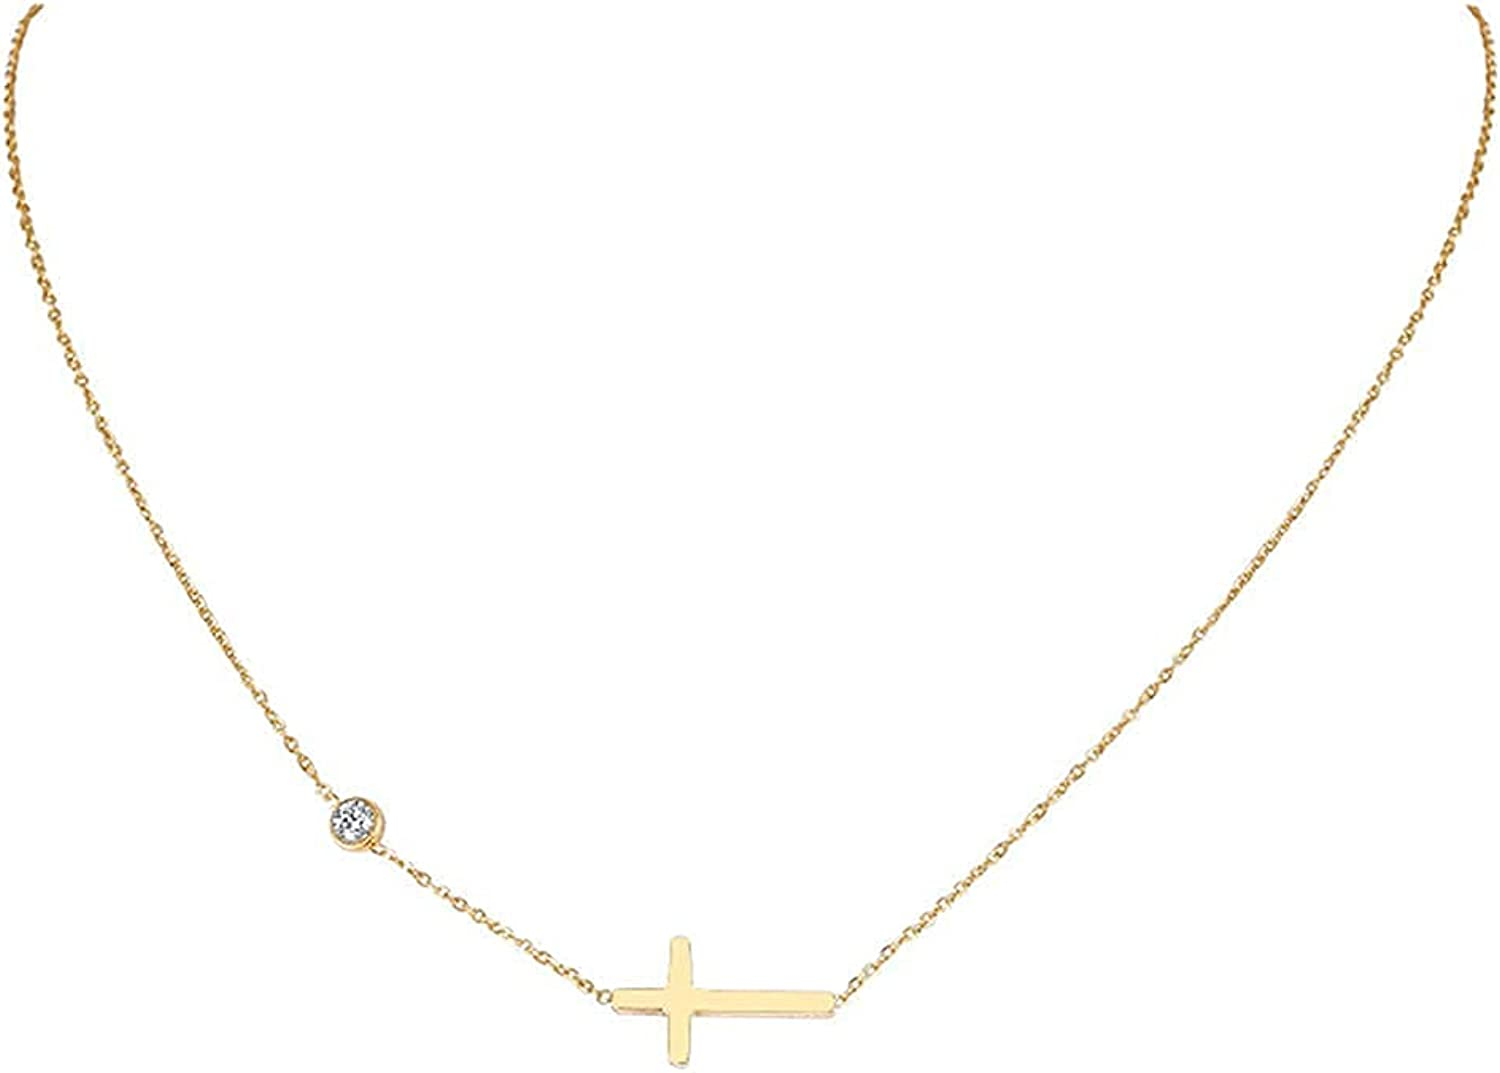 18K Gold Plated Cross/Chain Necklace for Women Cubic Zirconia Initial Choker Necklace Gold Necklaces for Women